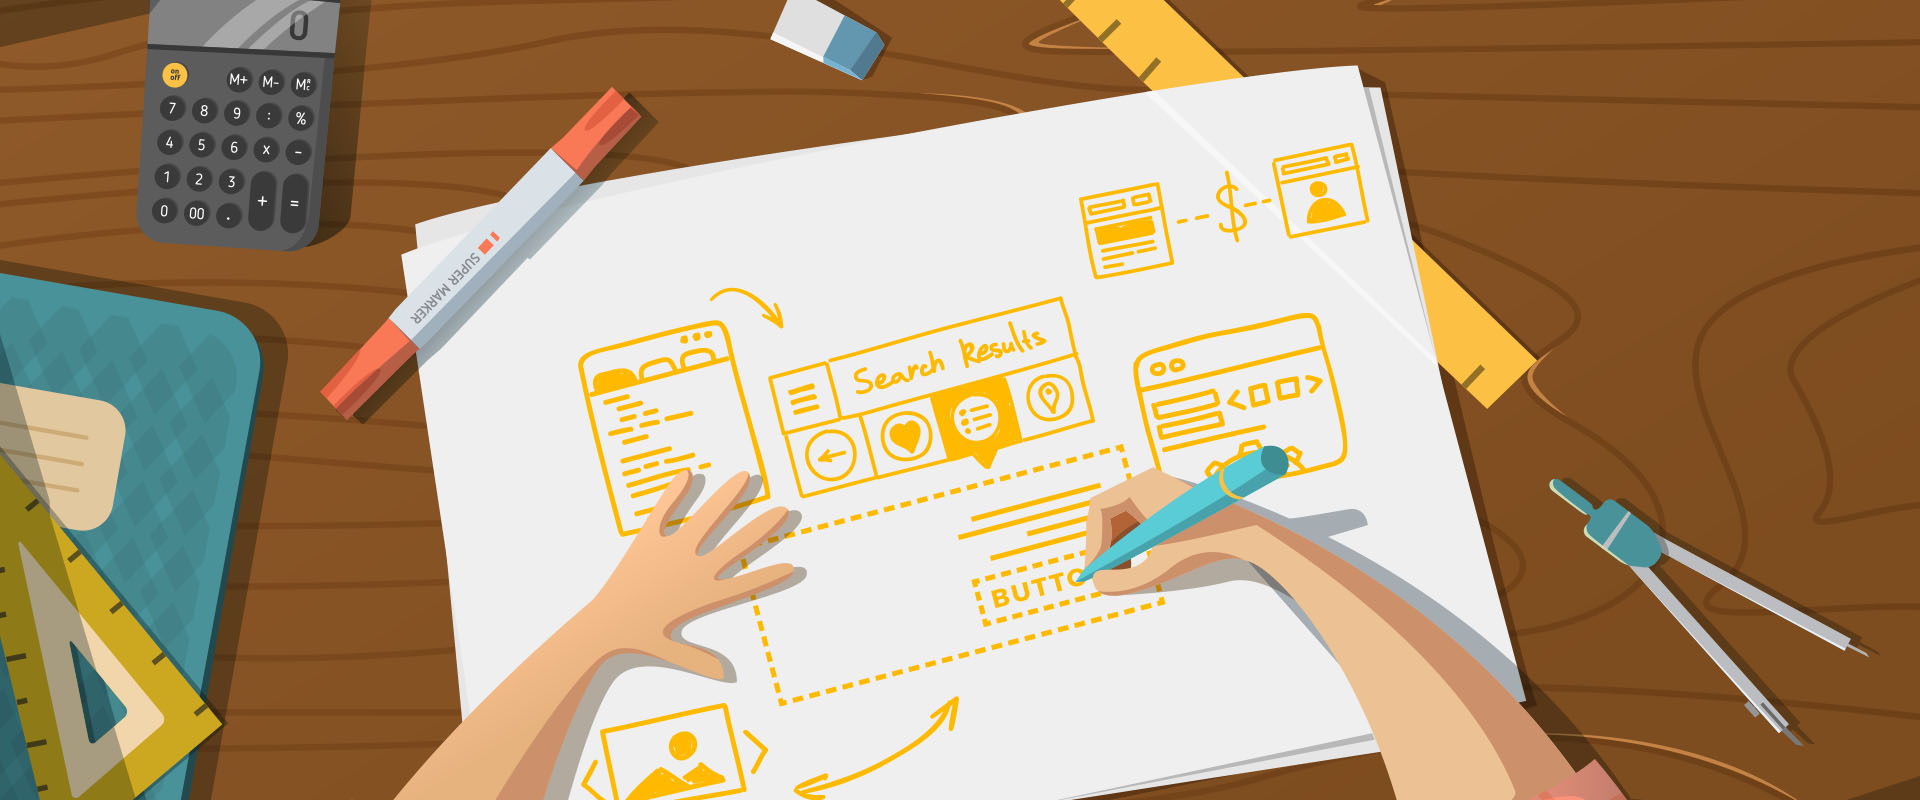 Digital marketing and advertising agency in saudi arabia for Graphic design agency